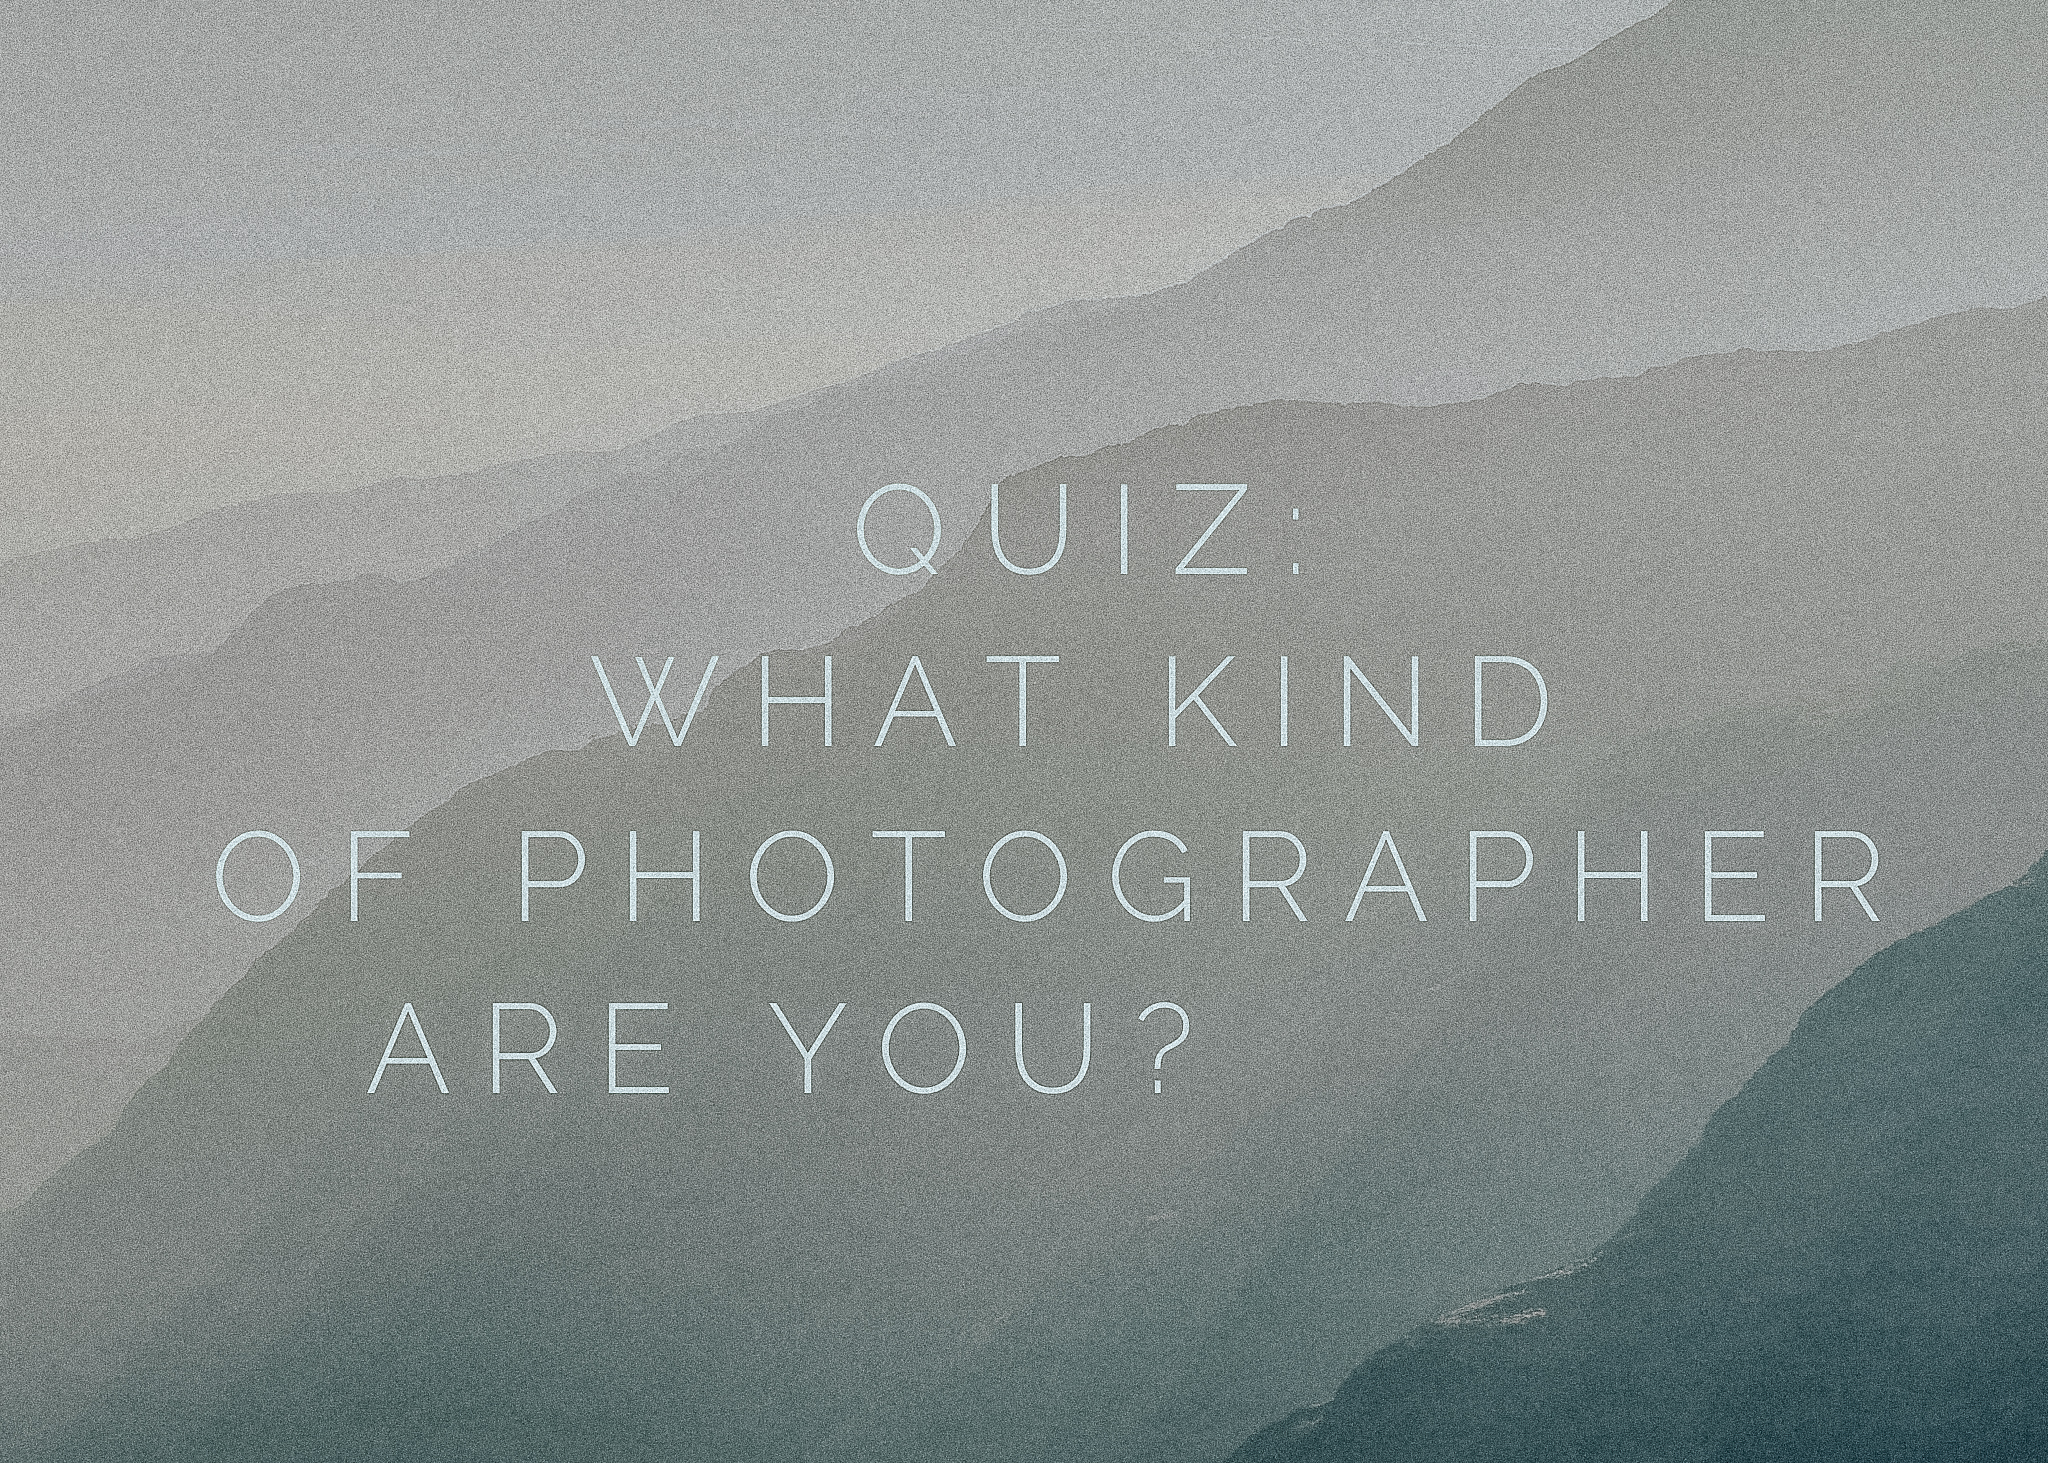 Quiz: What Kind of Photographer Are You? - Jenna Martin Photo